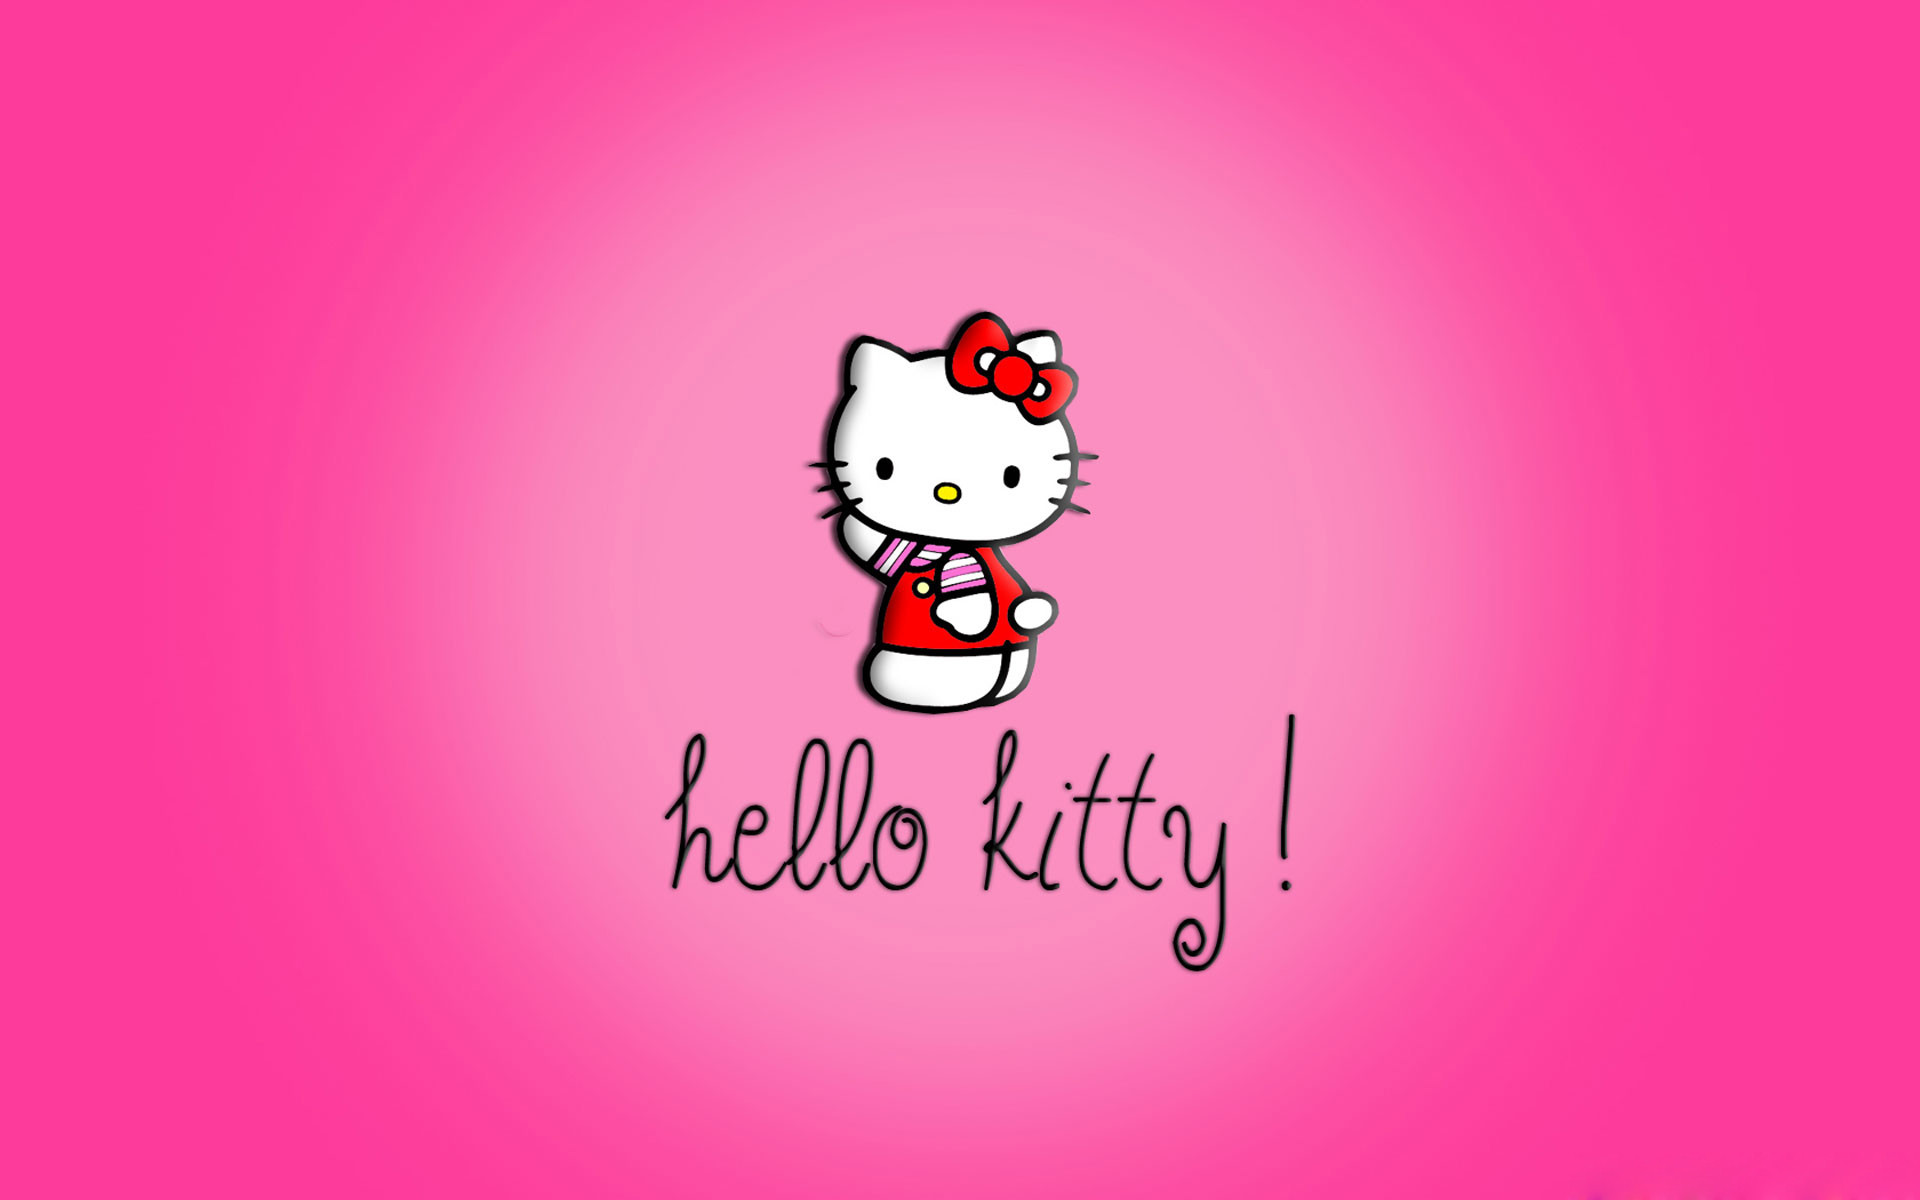 1920x1200 Wallpapers Market Download free hello kitty pink wallpaper .